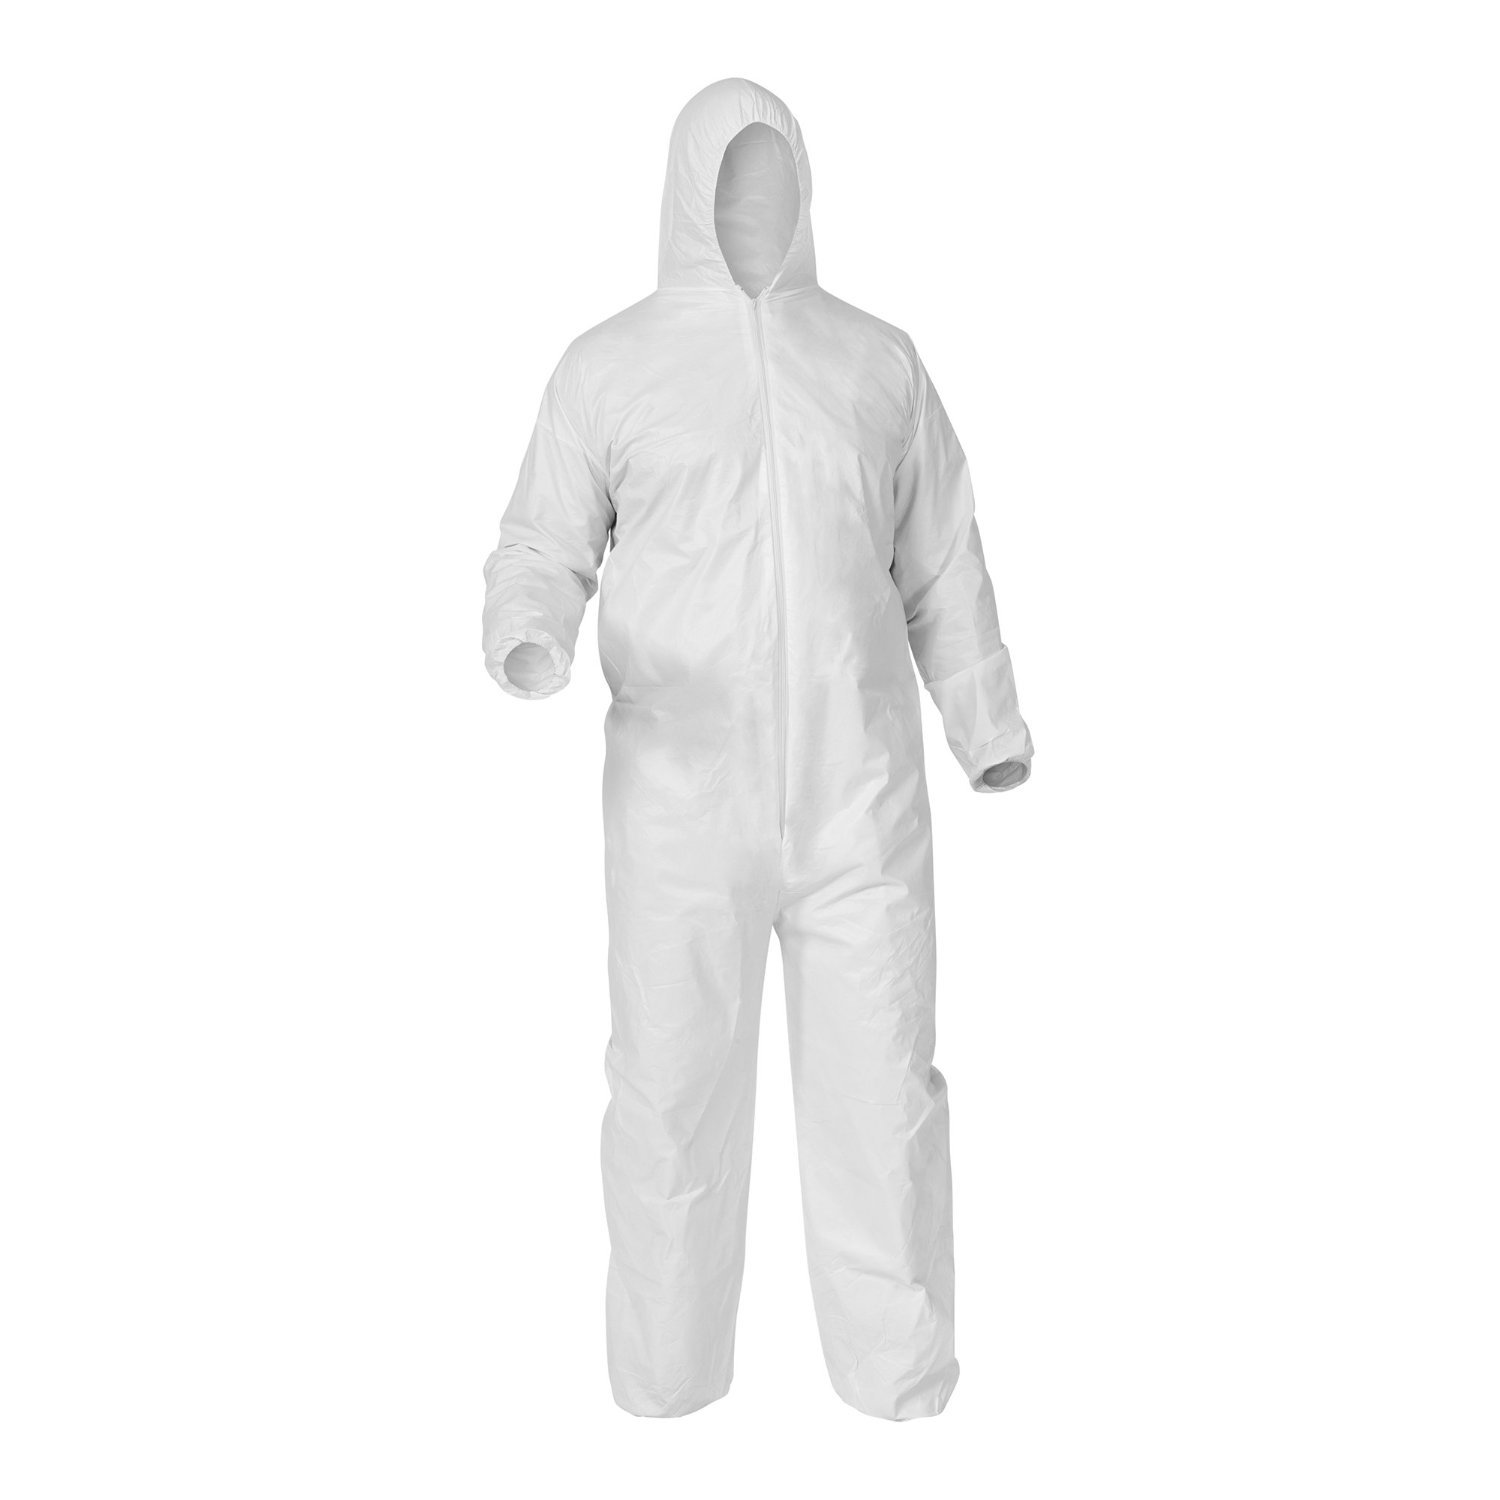 Shield Safety 30G White Disposable Coverall 2X-Large with Attached Hood, 50 Pieces